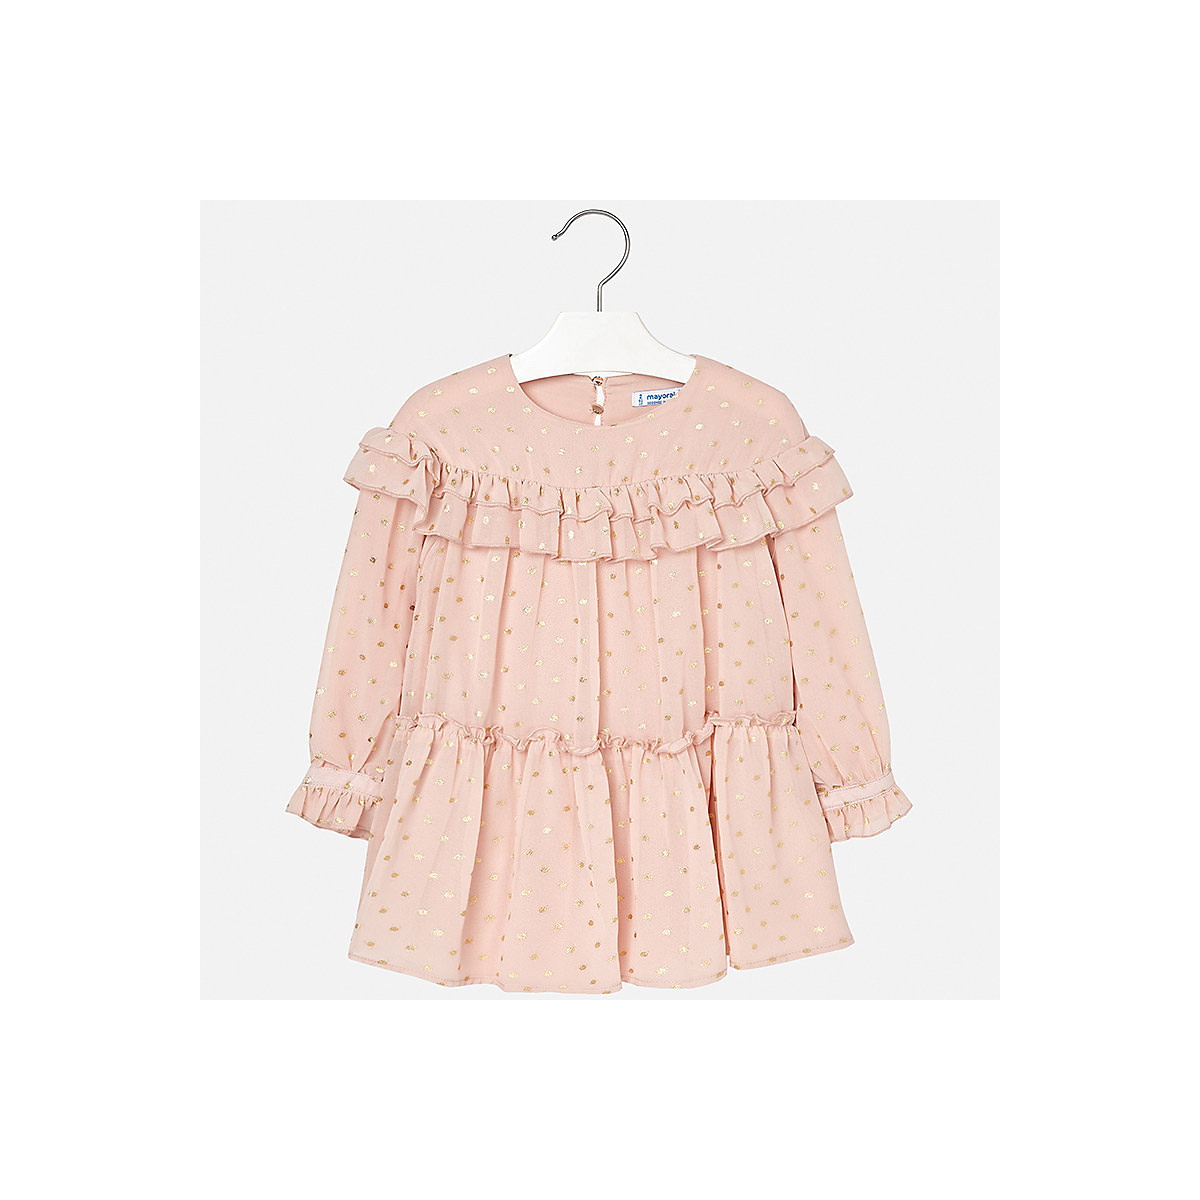 MAYORAL Dresses 8850352 Polyester Casual children clothing